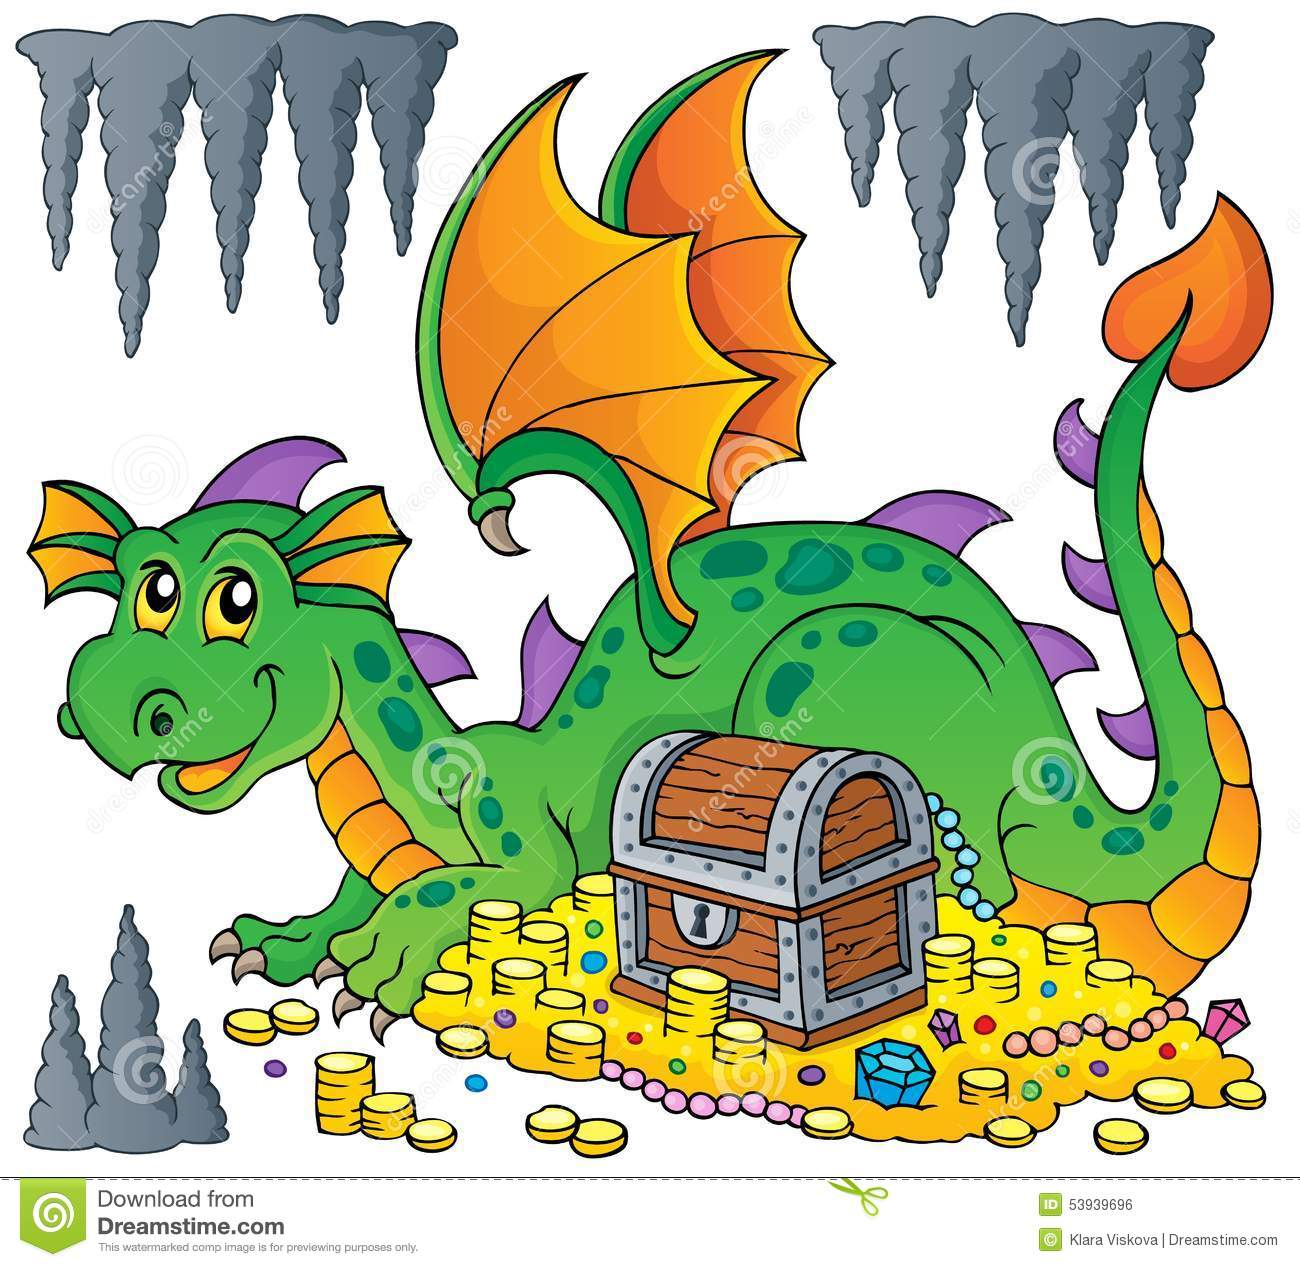 Image result for images of treasure guarded by dragon